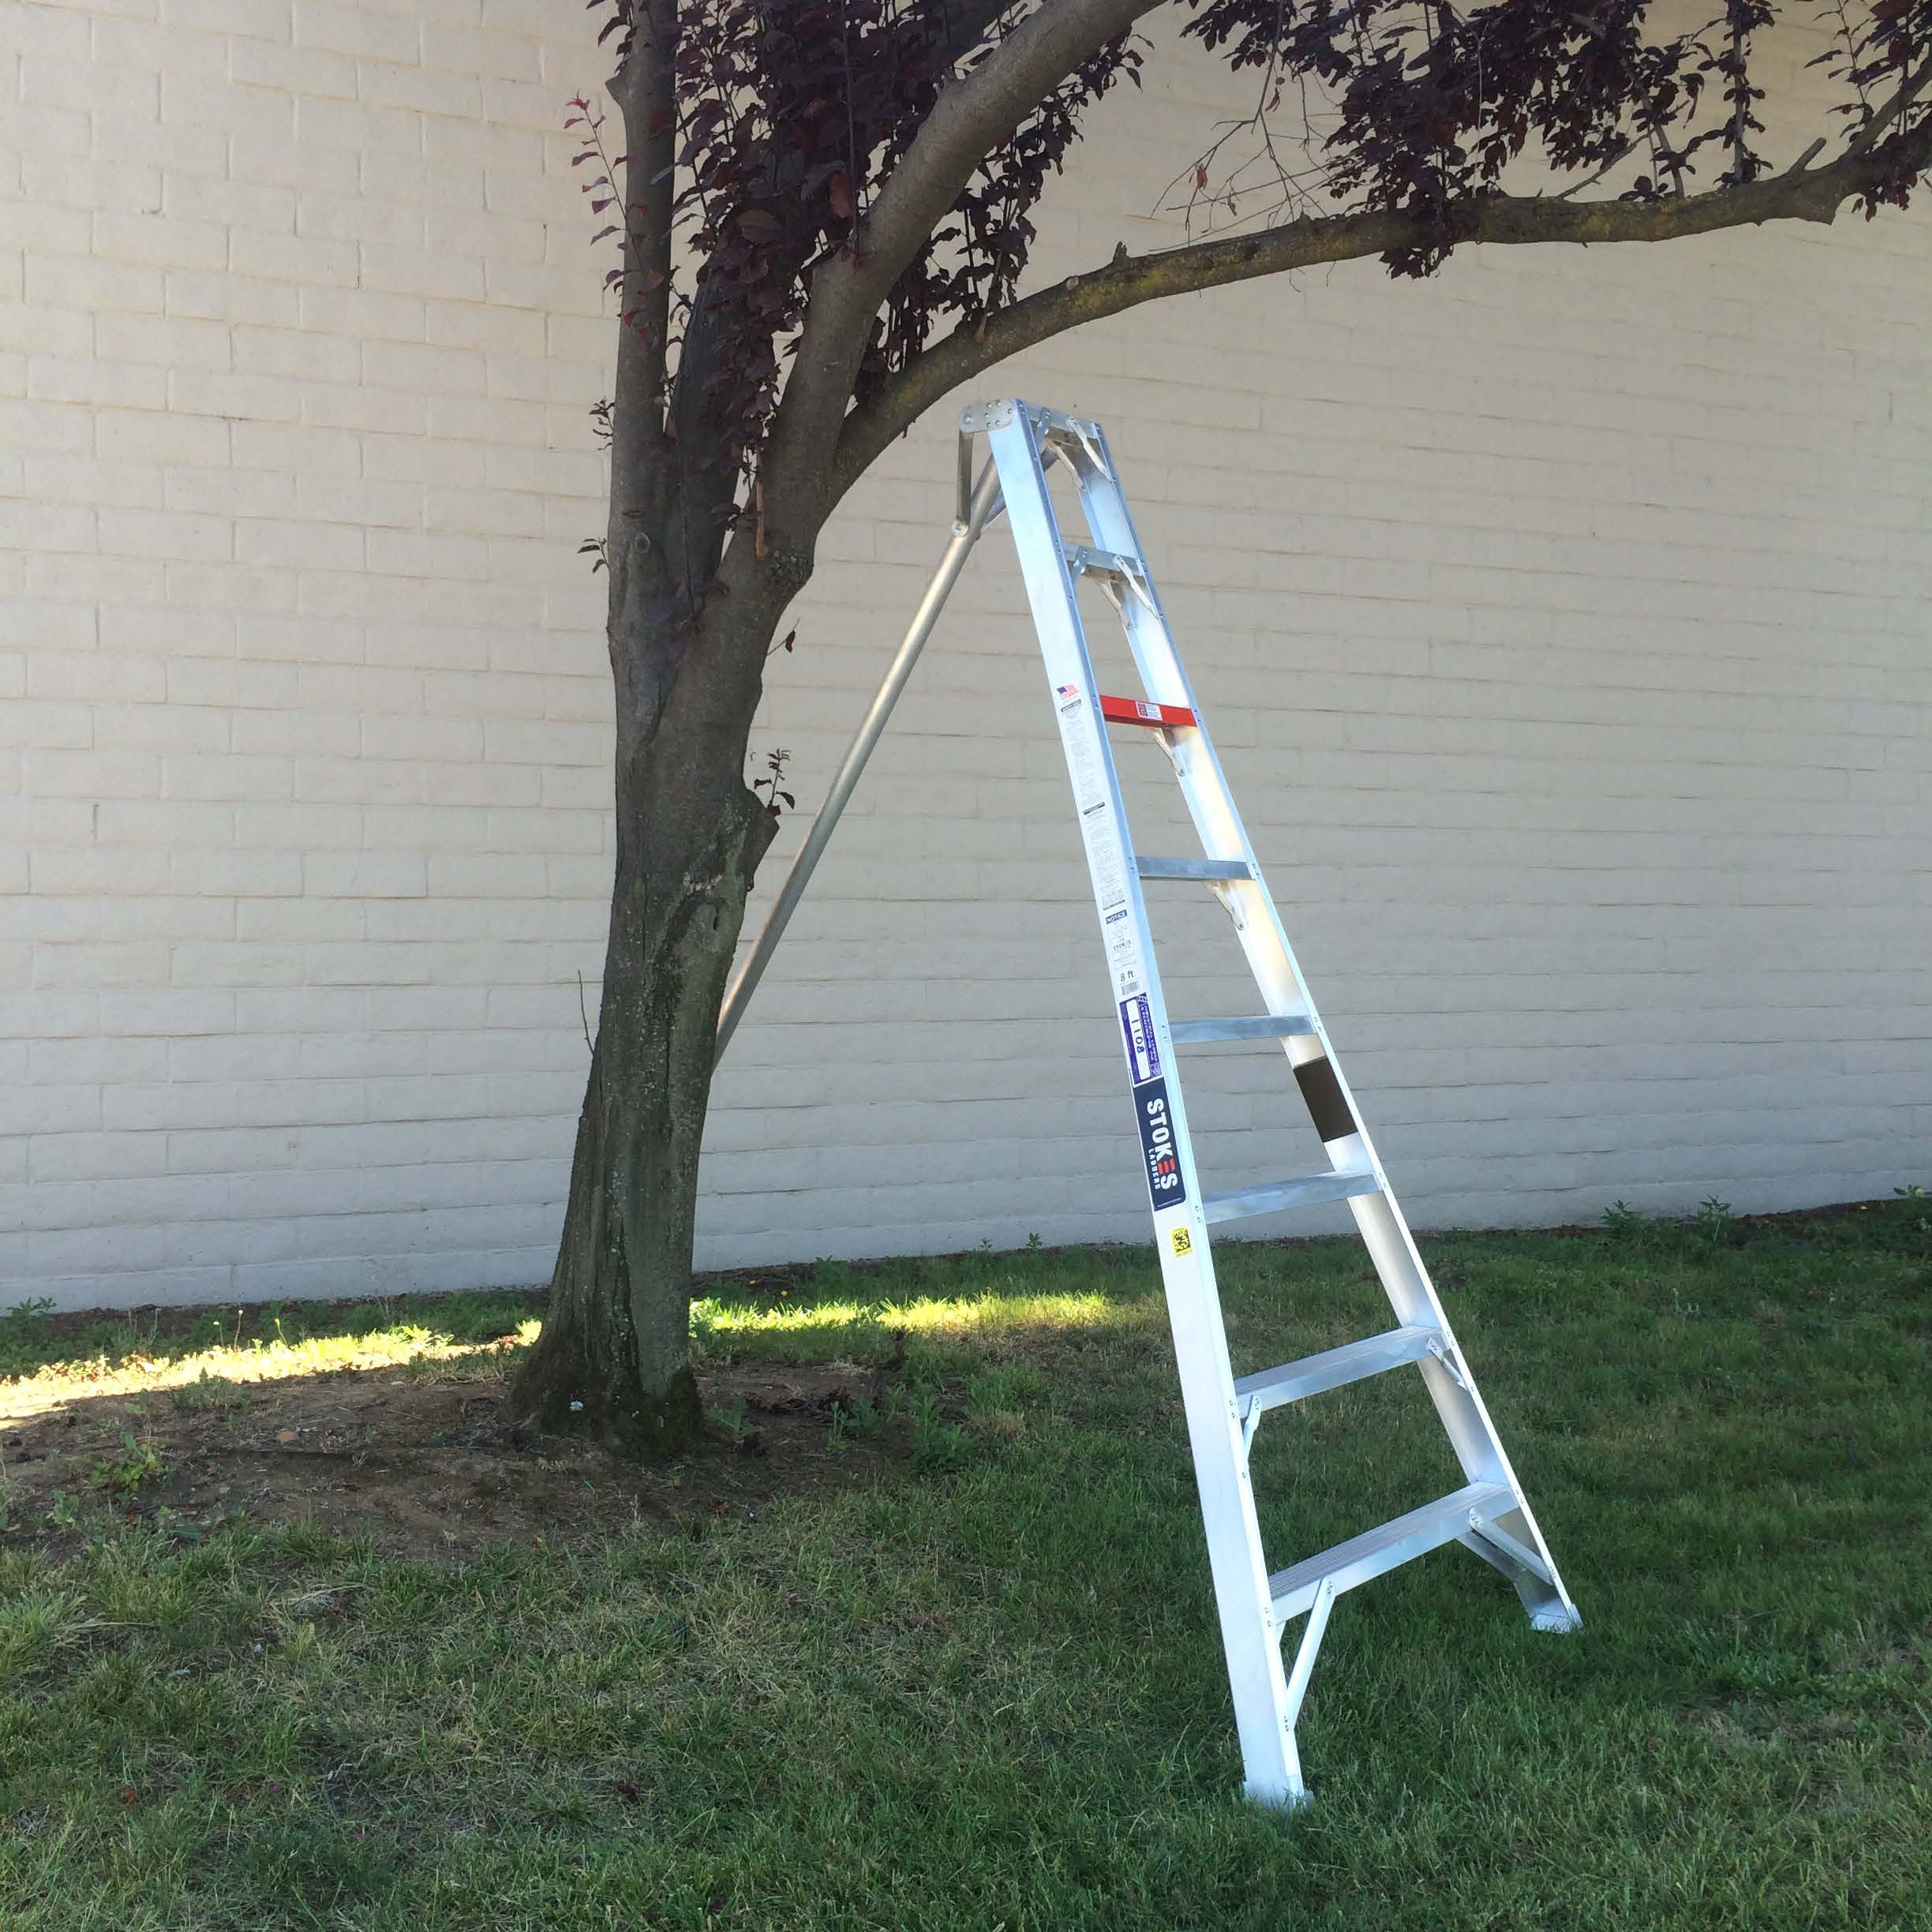 Orchard Ladders, Orchard Ladders Sacramento, Orchard Ladders San Jose, Orchard Ladders Napa, Orchard ladders Dixon, Tripod Ladders Sacramento